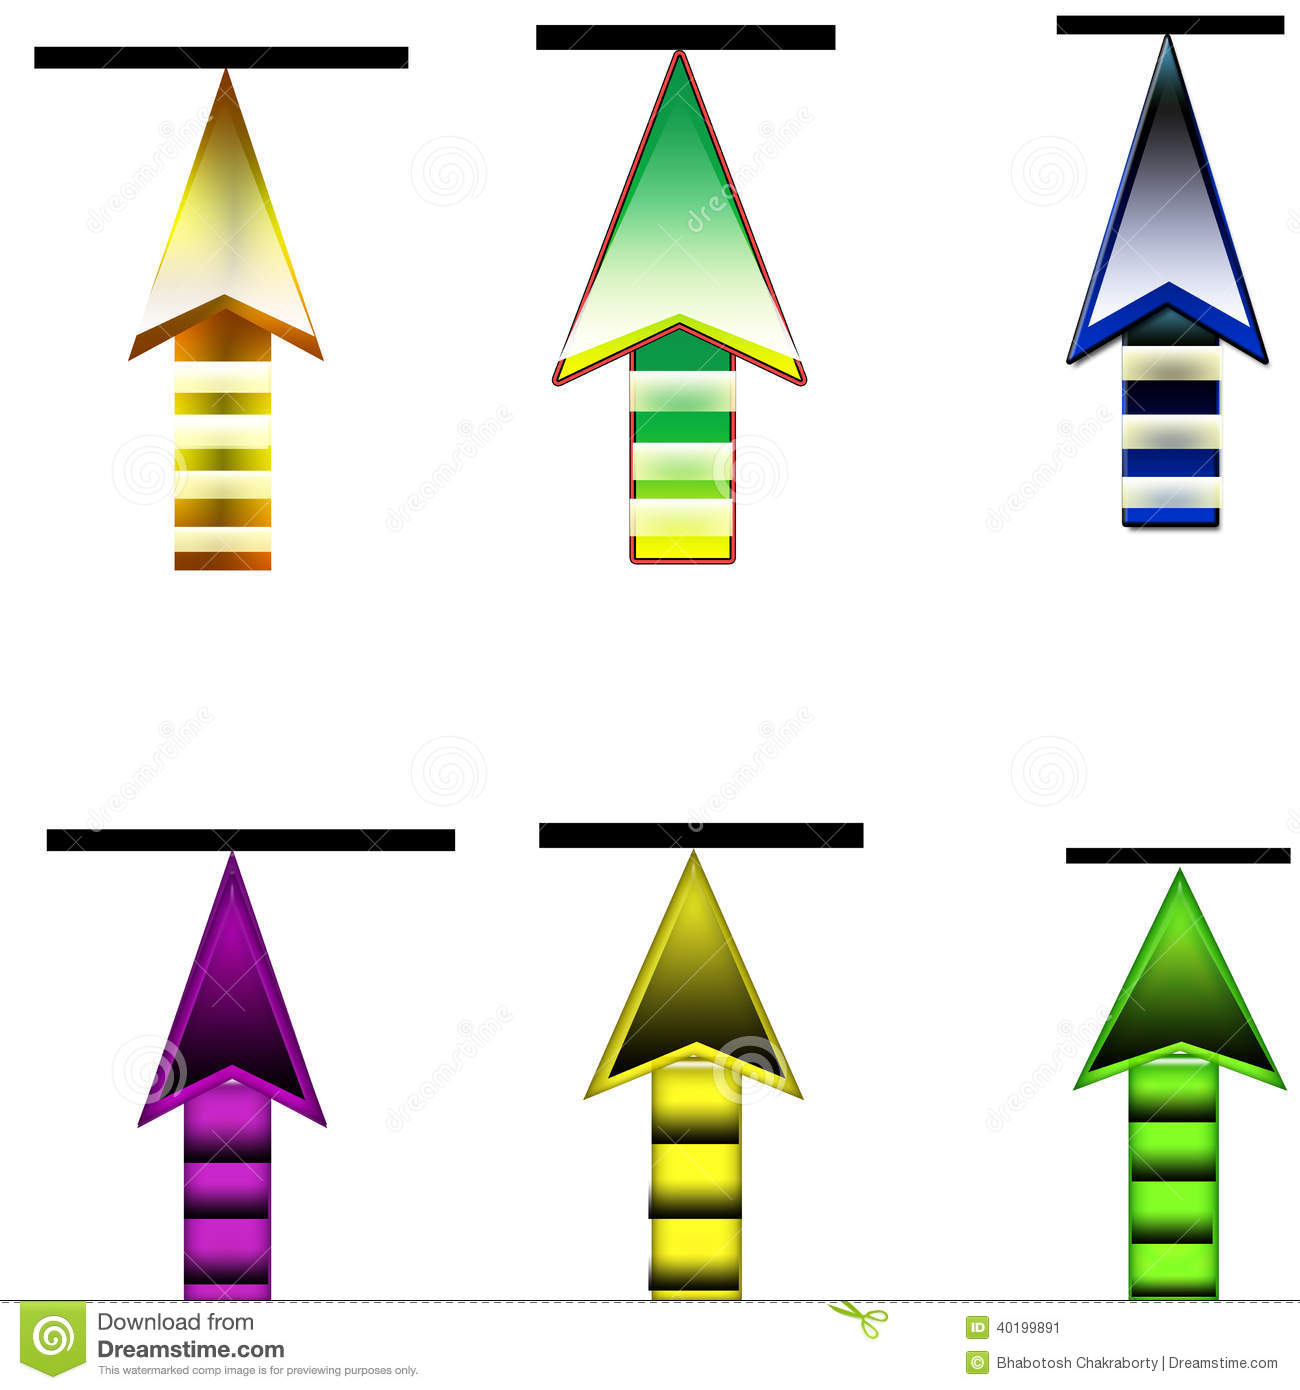 6 Upload Arrow Button Stock Image. Illustration Of